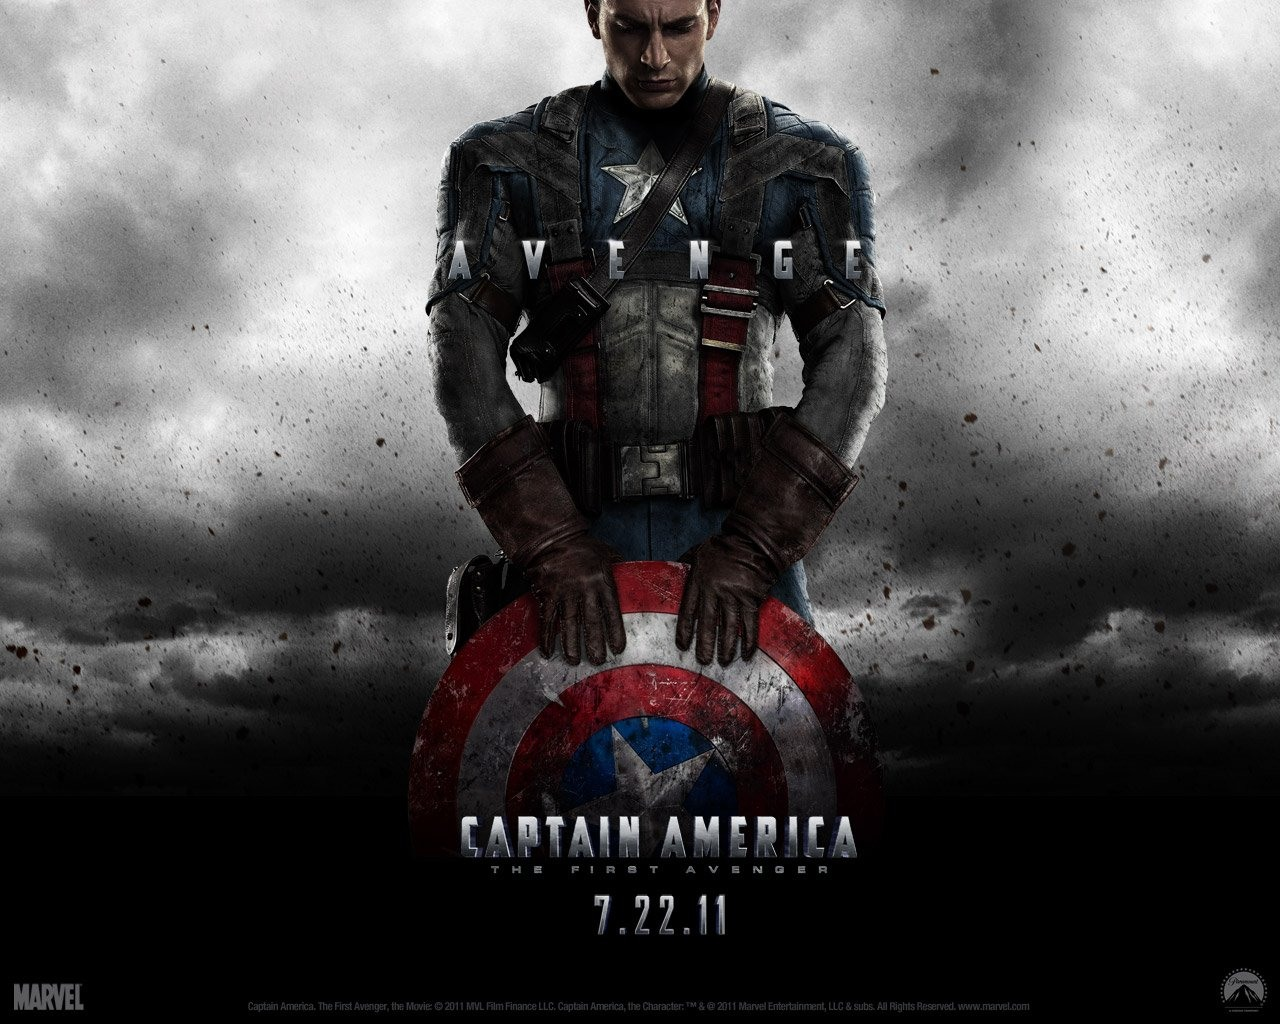 FunMozar Captain America Wallpapers Image Source From This